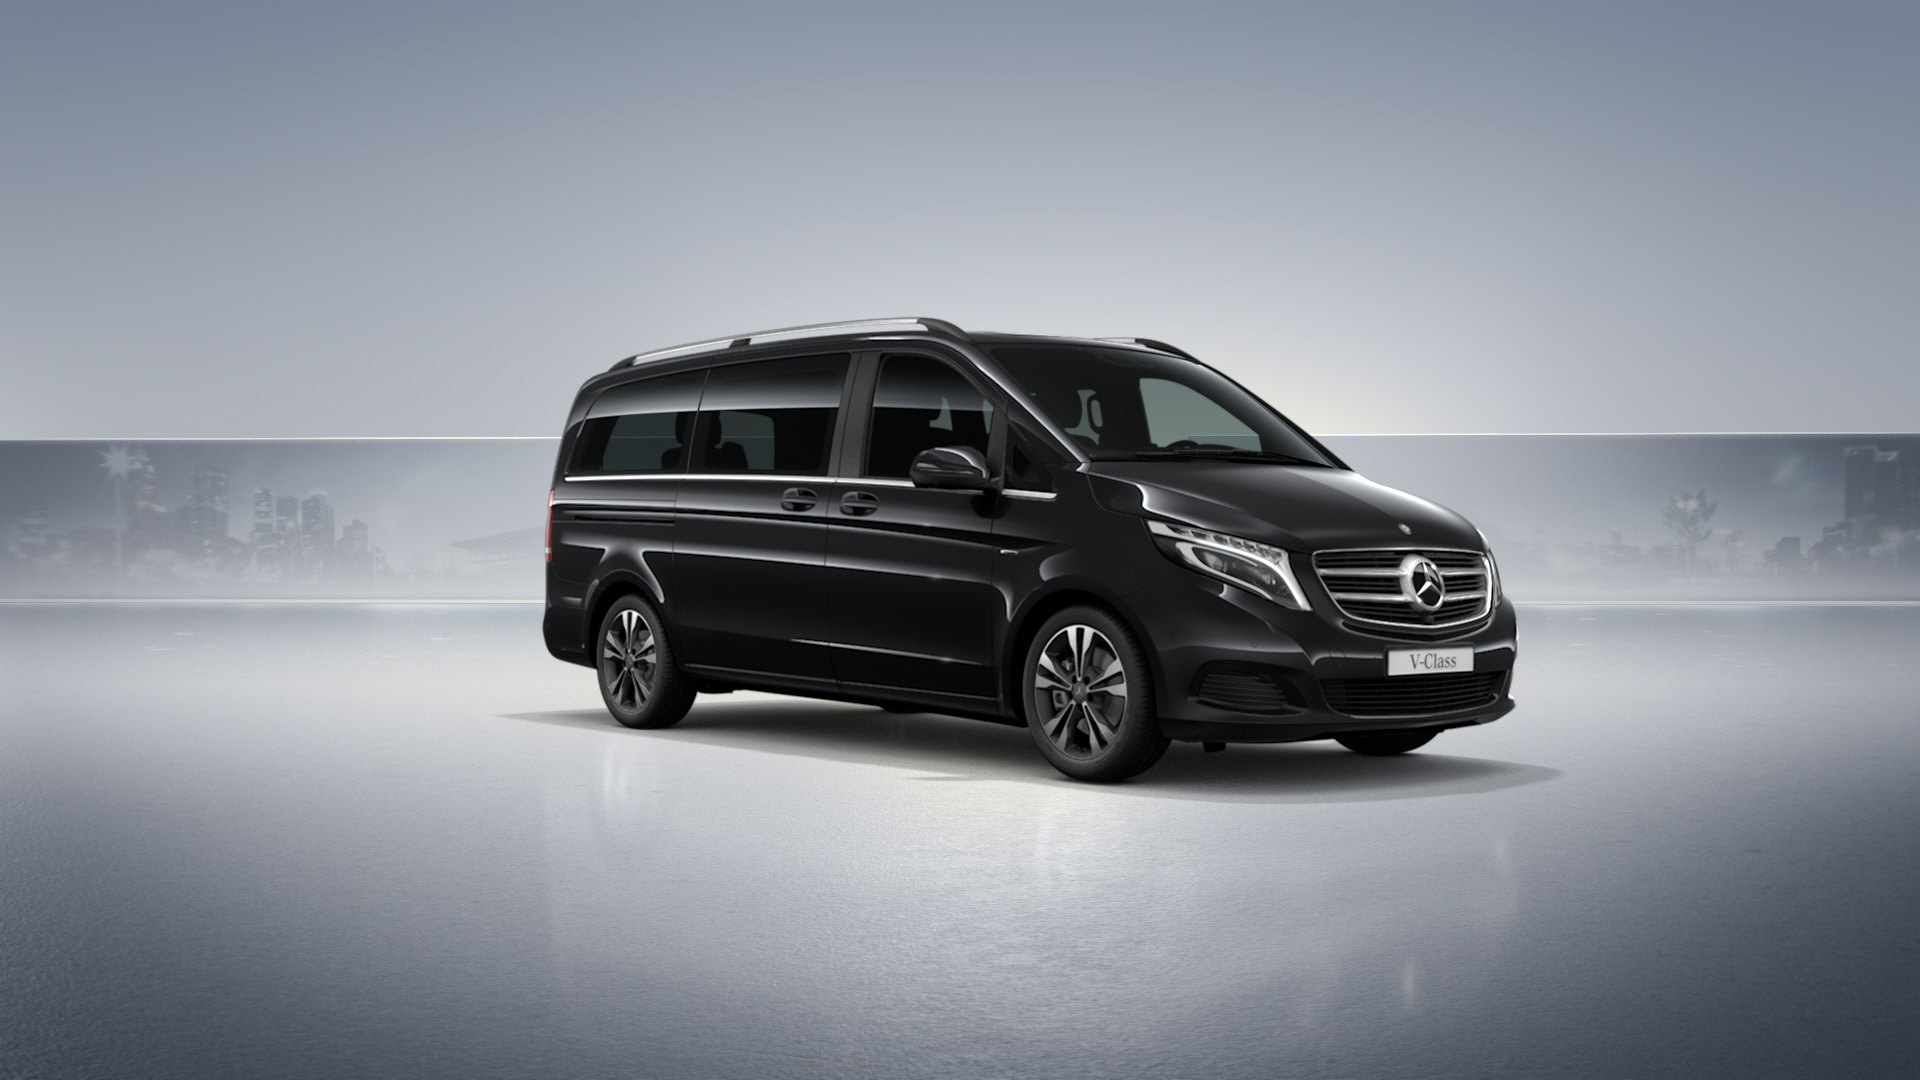 Mercedes benz v class xl vip 4matic alphubel limousine for Mercedes benz customer service email address